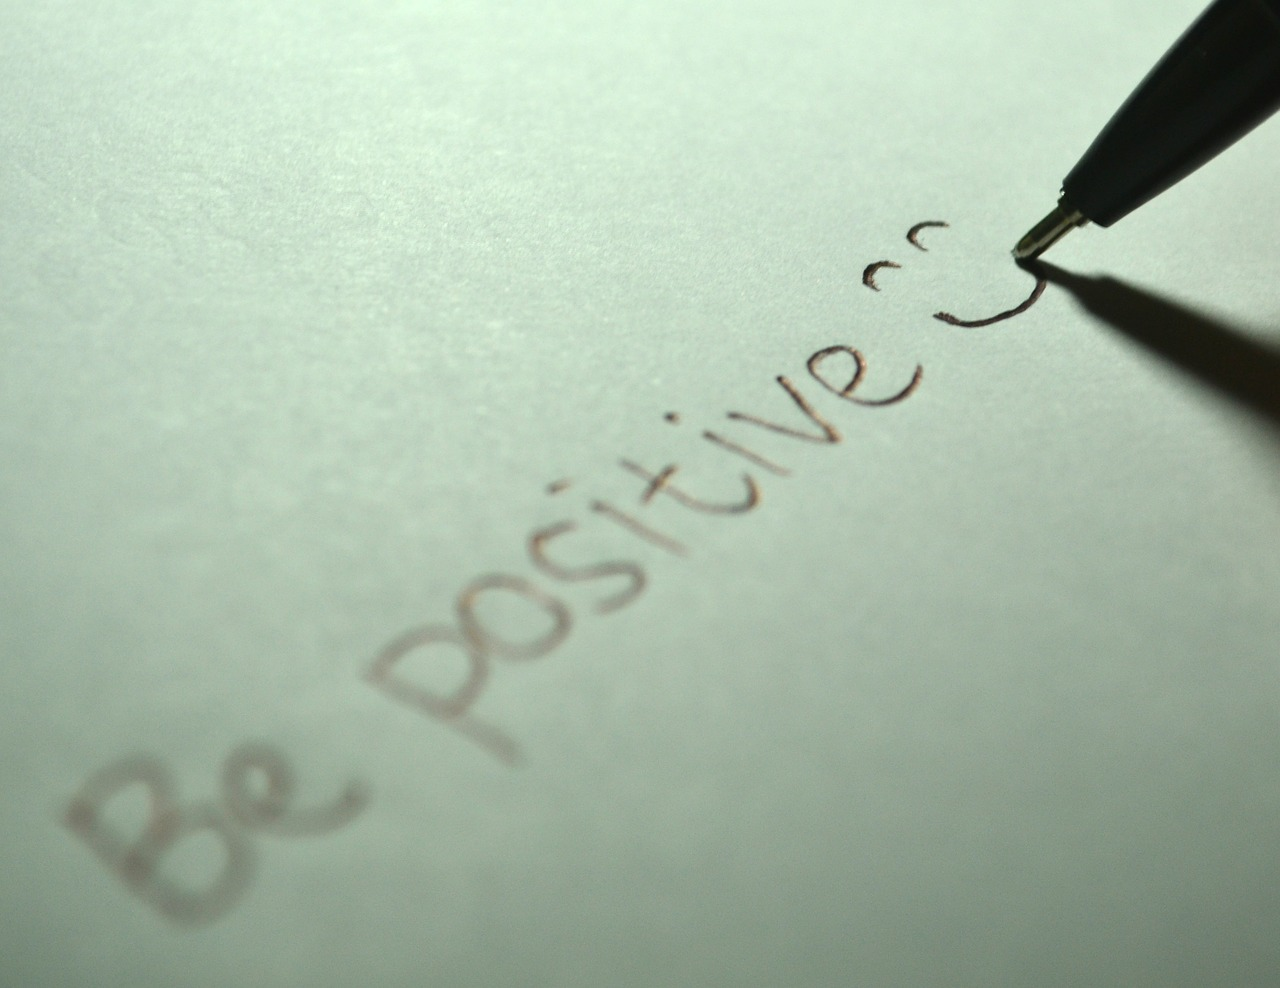 """the words """"be positive"""" and a smiling face written on a piece of paper"""